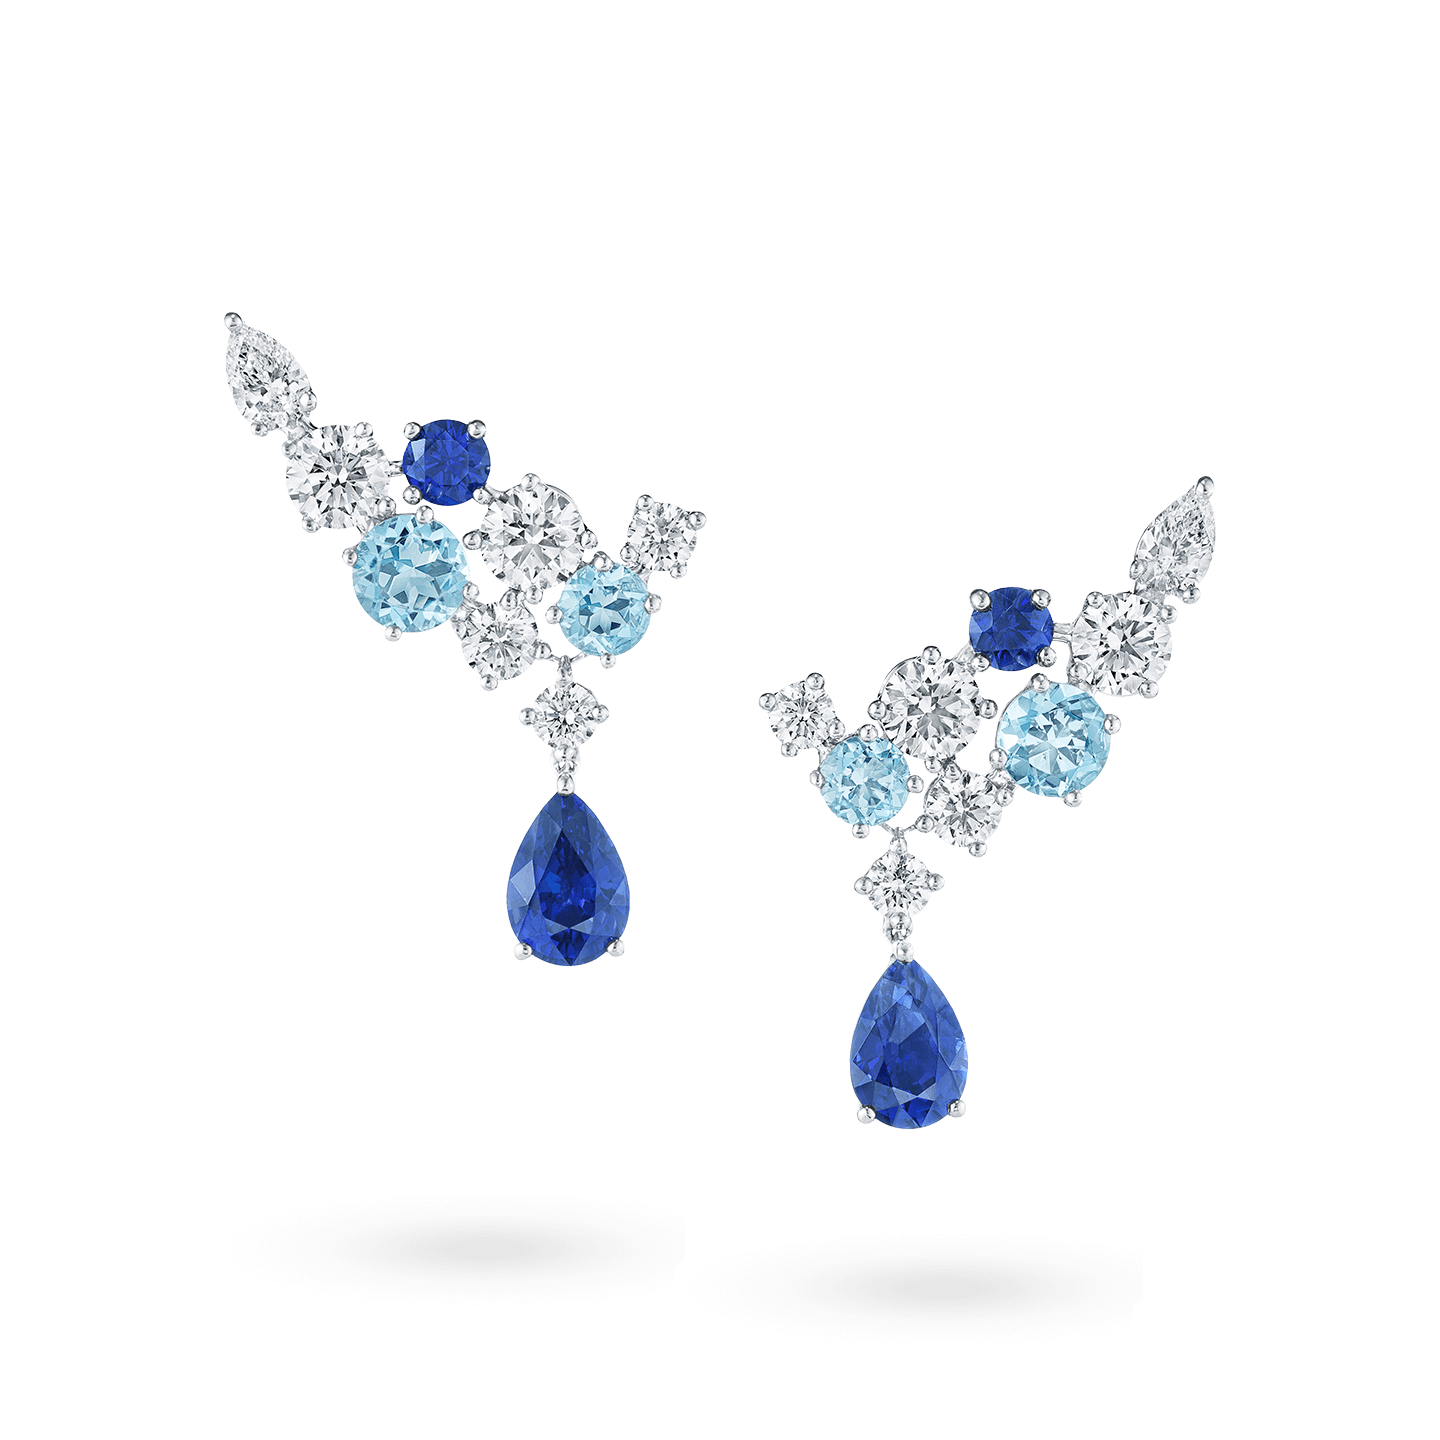 Sparkling Cluster Sapphire Aquamarine and Diamond Earrings, Product Image 1